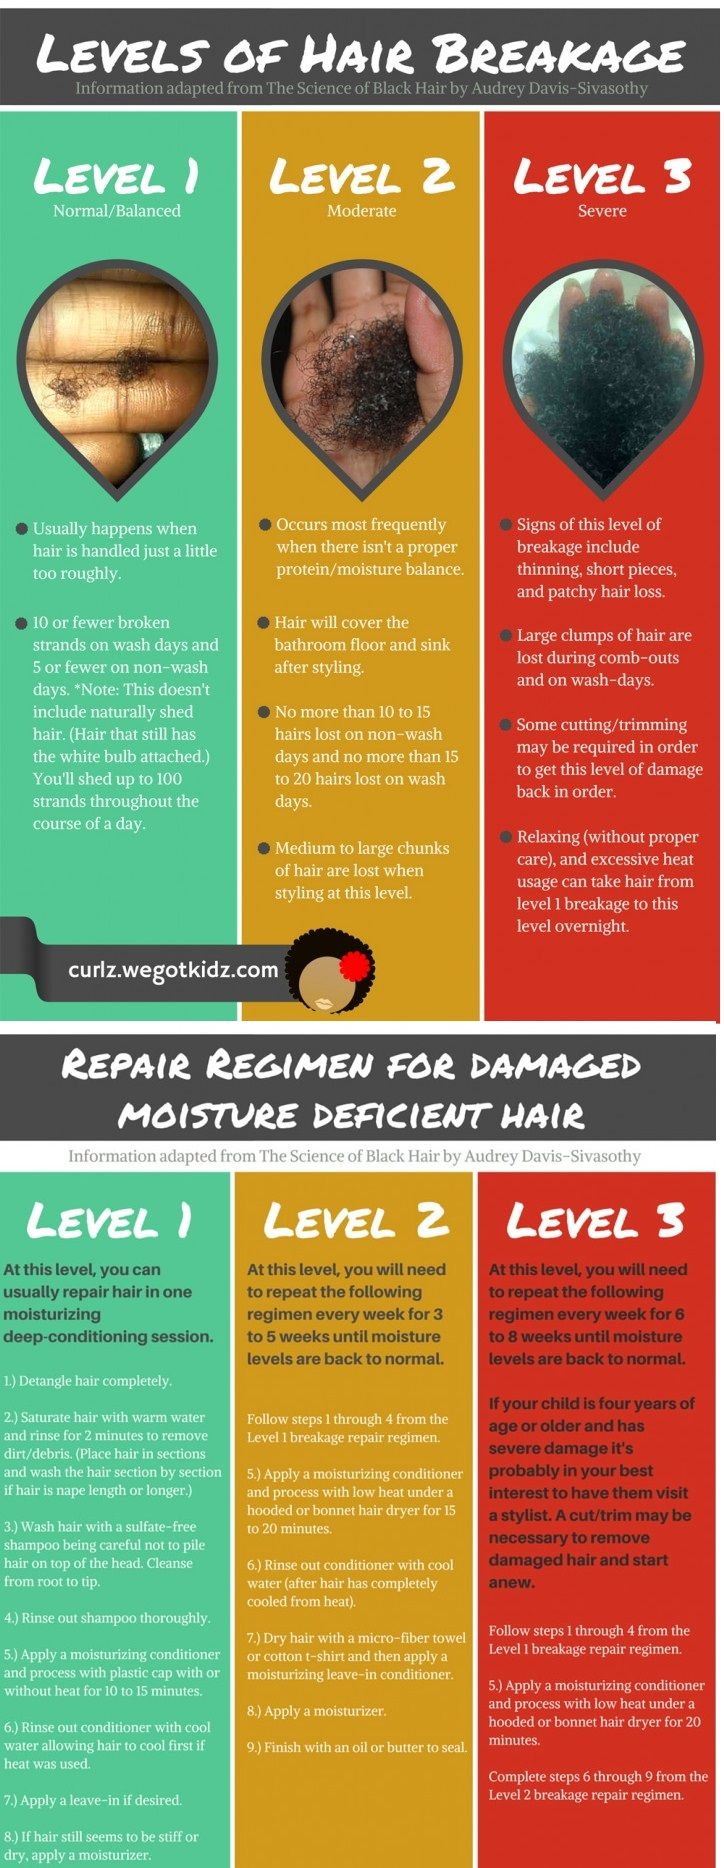 www.shorthaircutsforblackwomen.com/natural-hair-breakage-treatment/ Levels of Hair Breakage and How to Fix Damage from Moisture Deficiency in Natural Hair #naturalhaircare